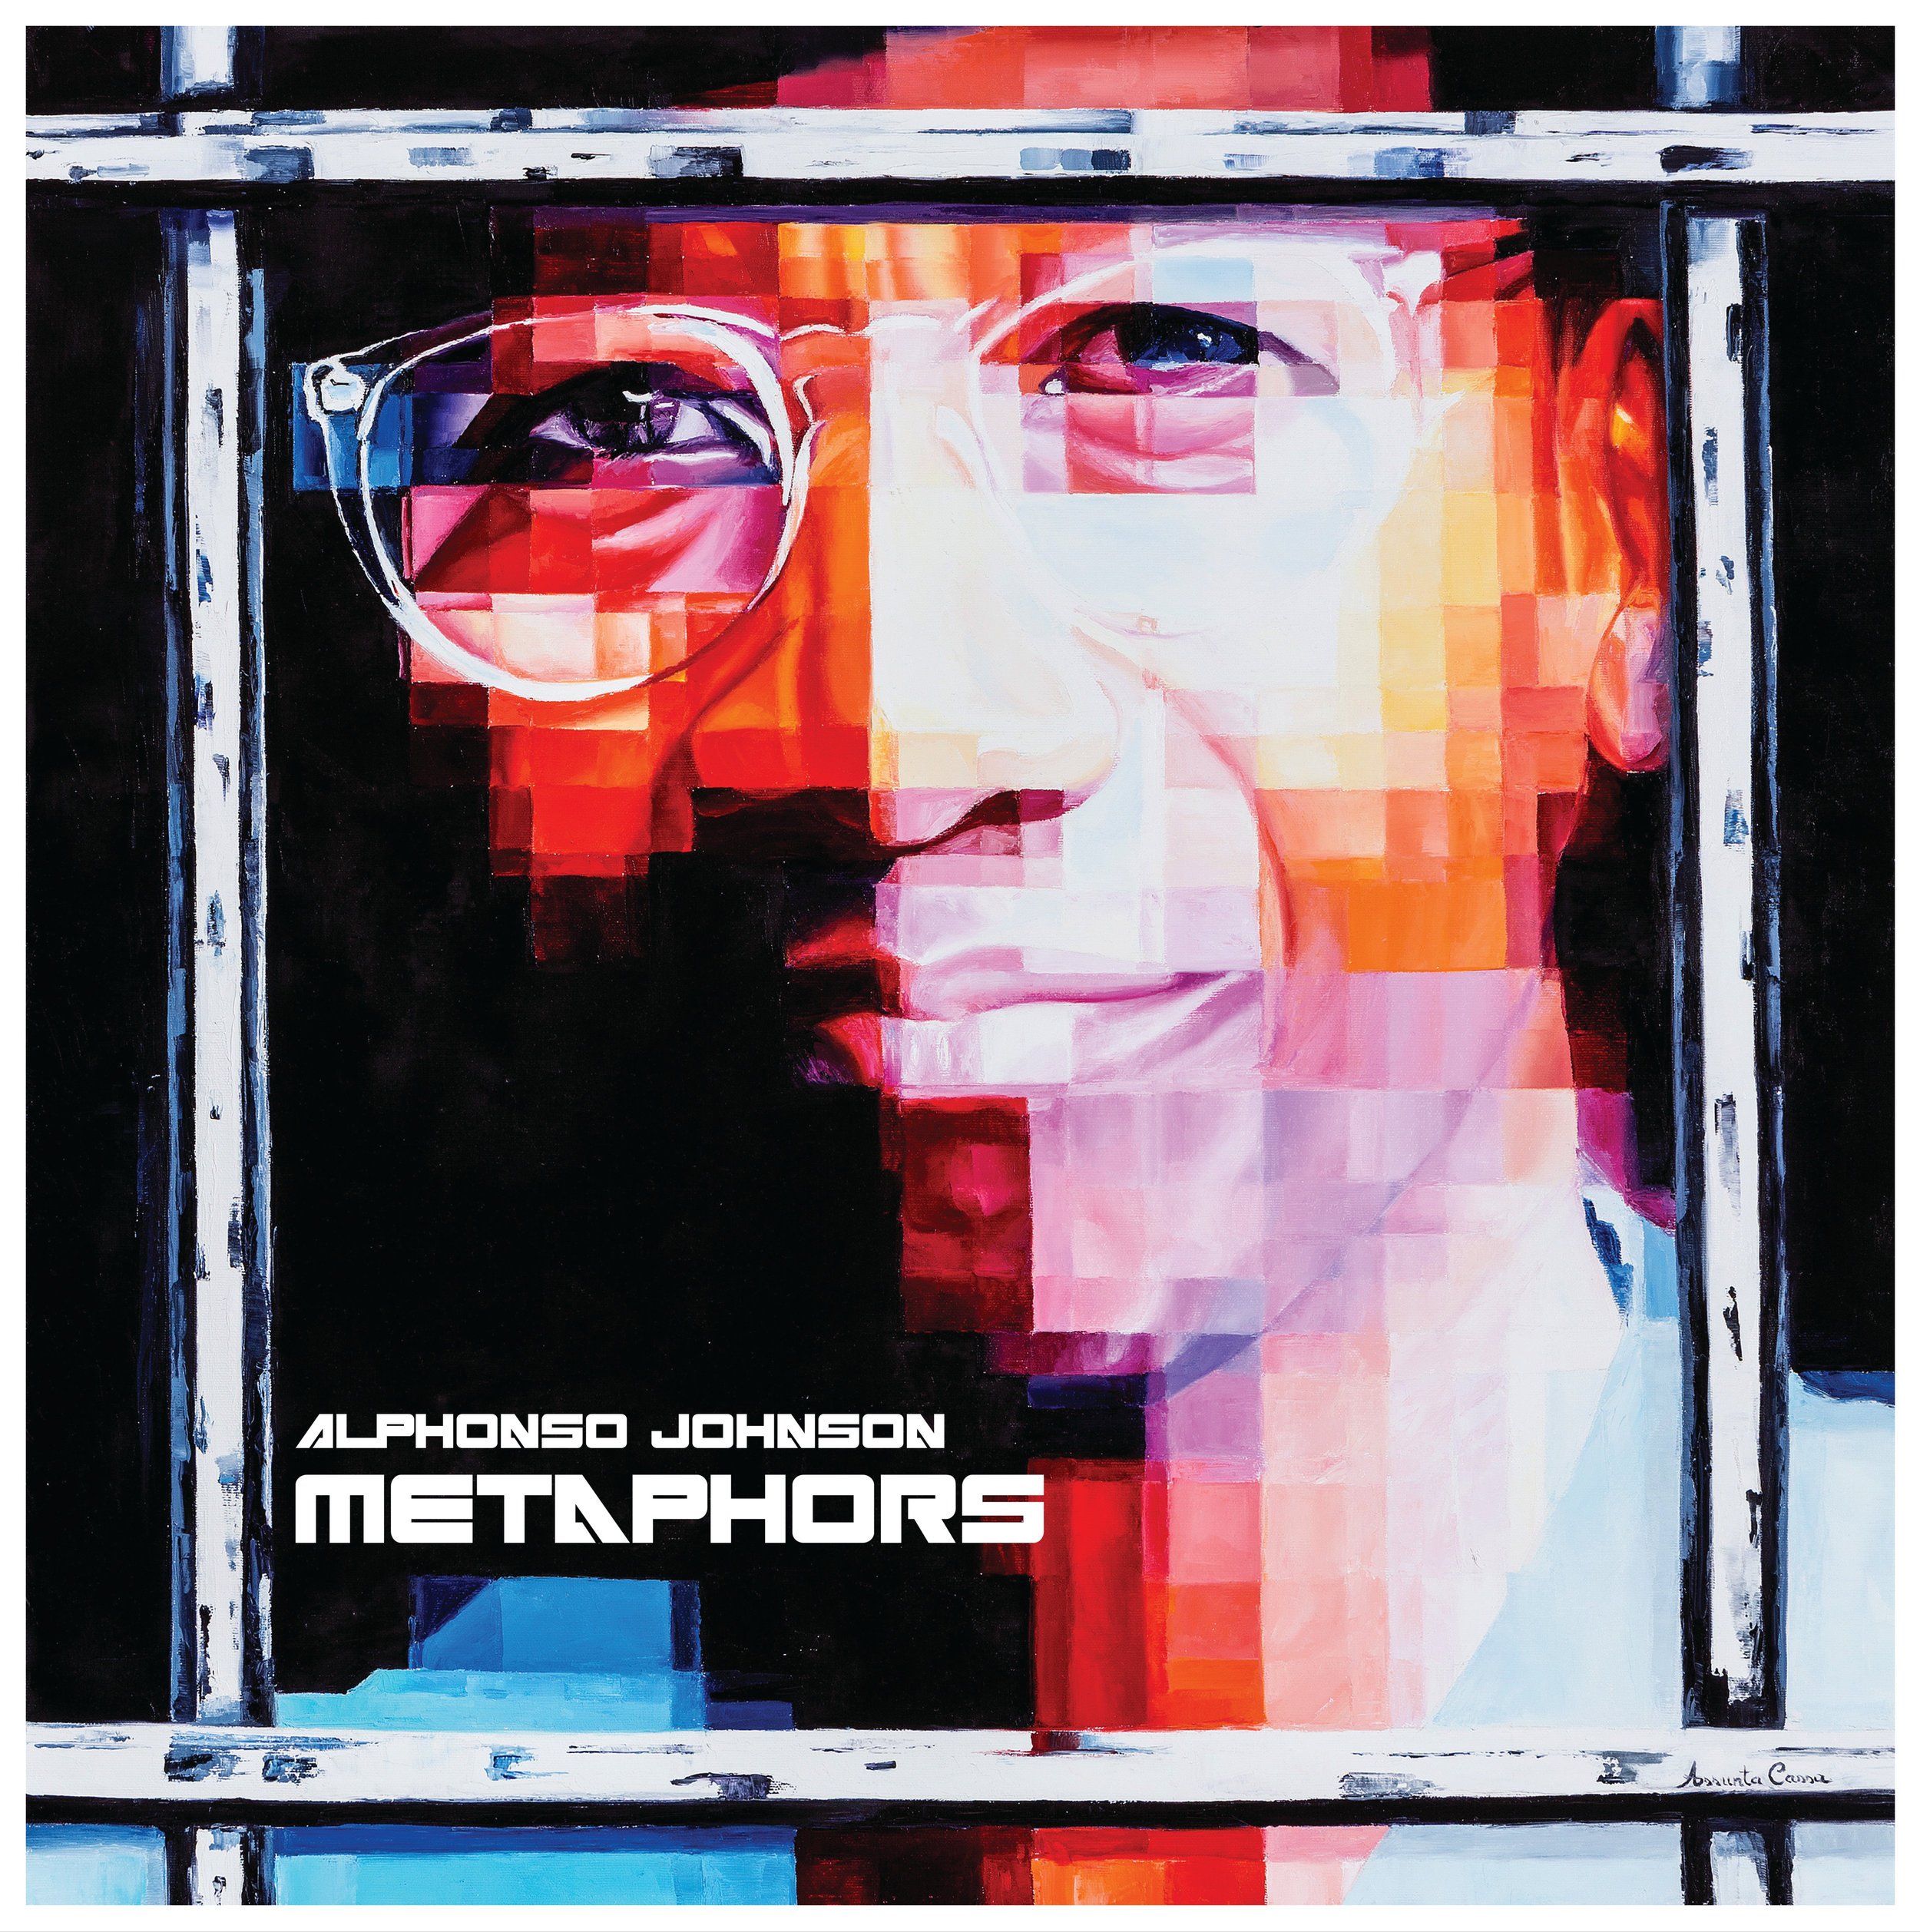 """METAPHORS - Internationally acclaimed Bassist and Chapman Stick artist Alphonso Johnson has accumulated numerous performing, recording, teaching, producing, composing and publishing credits during his illustrious career. His touring and recording credits read like a """"Who's Who"""" of jazz and fusion, and he is considered one of the top performers in the world on his instrument."""